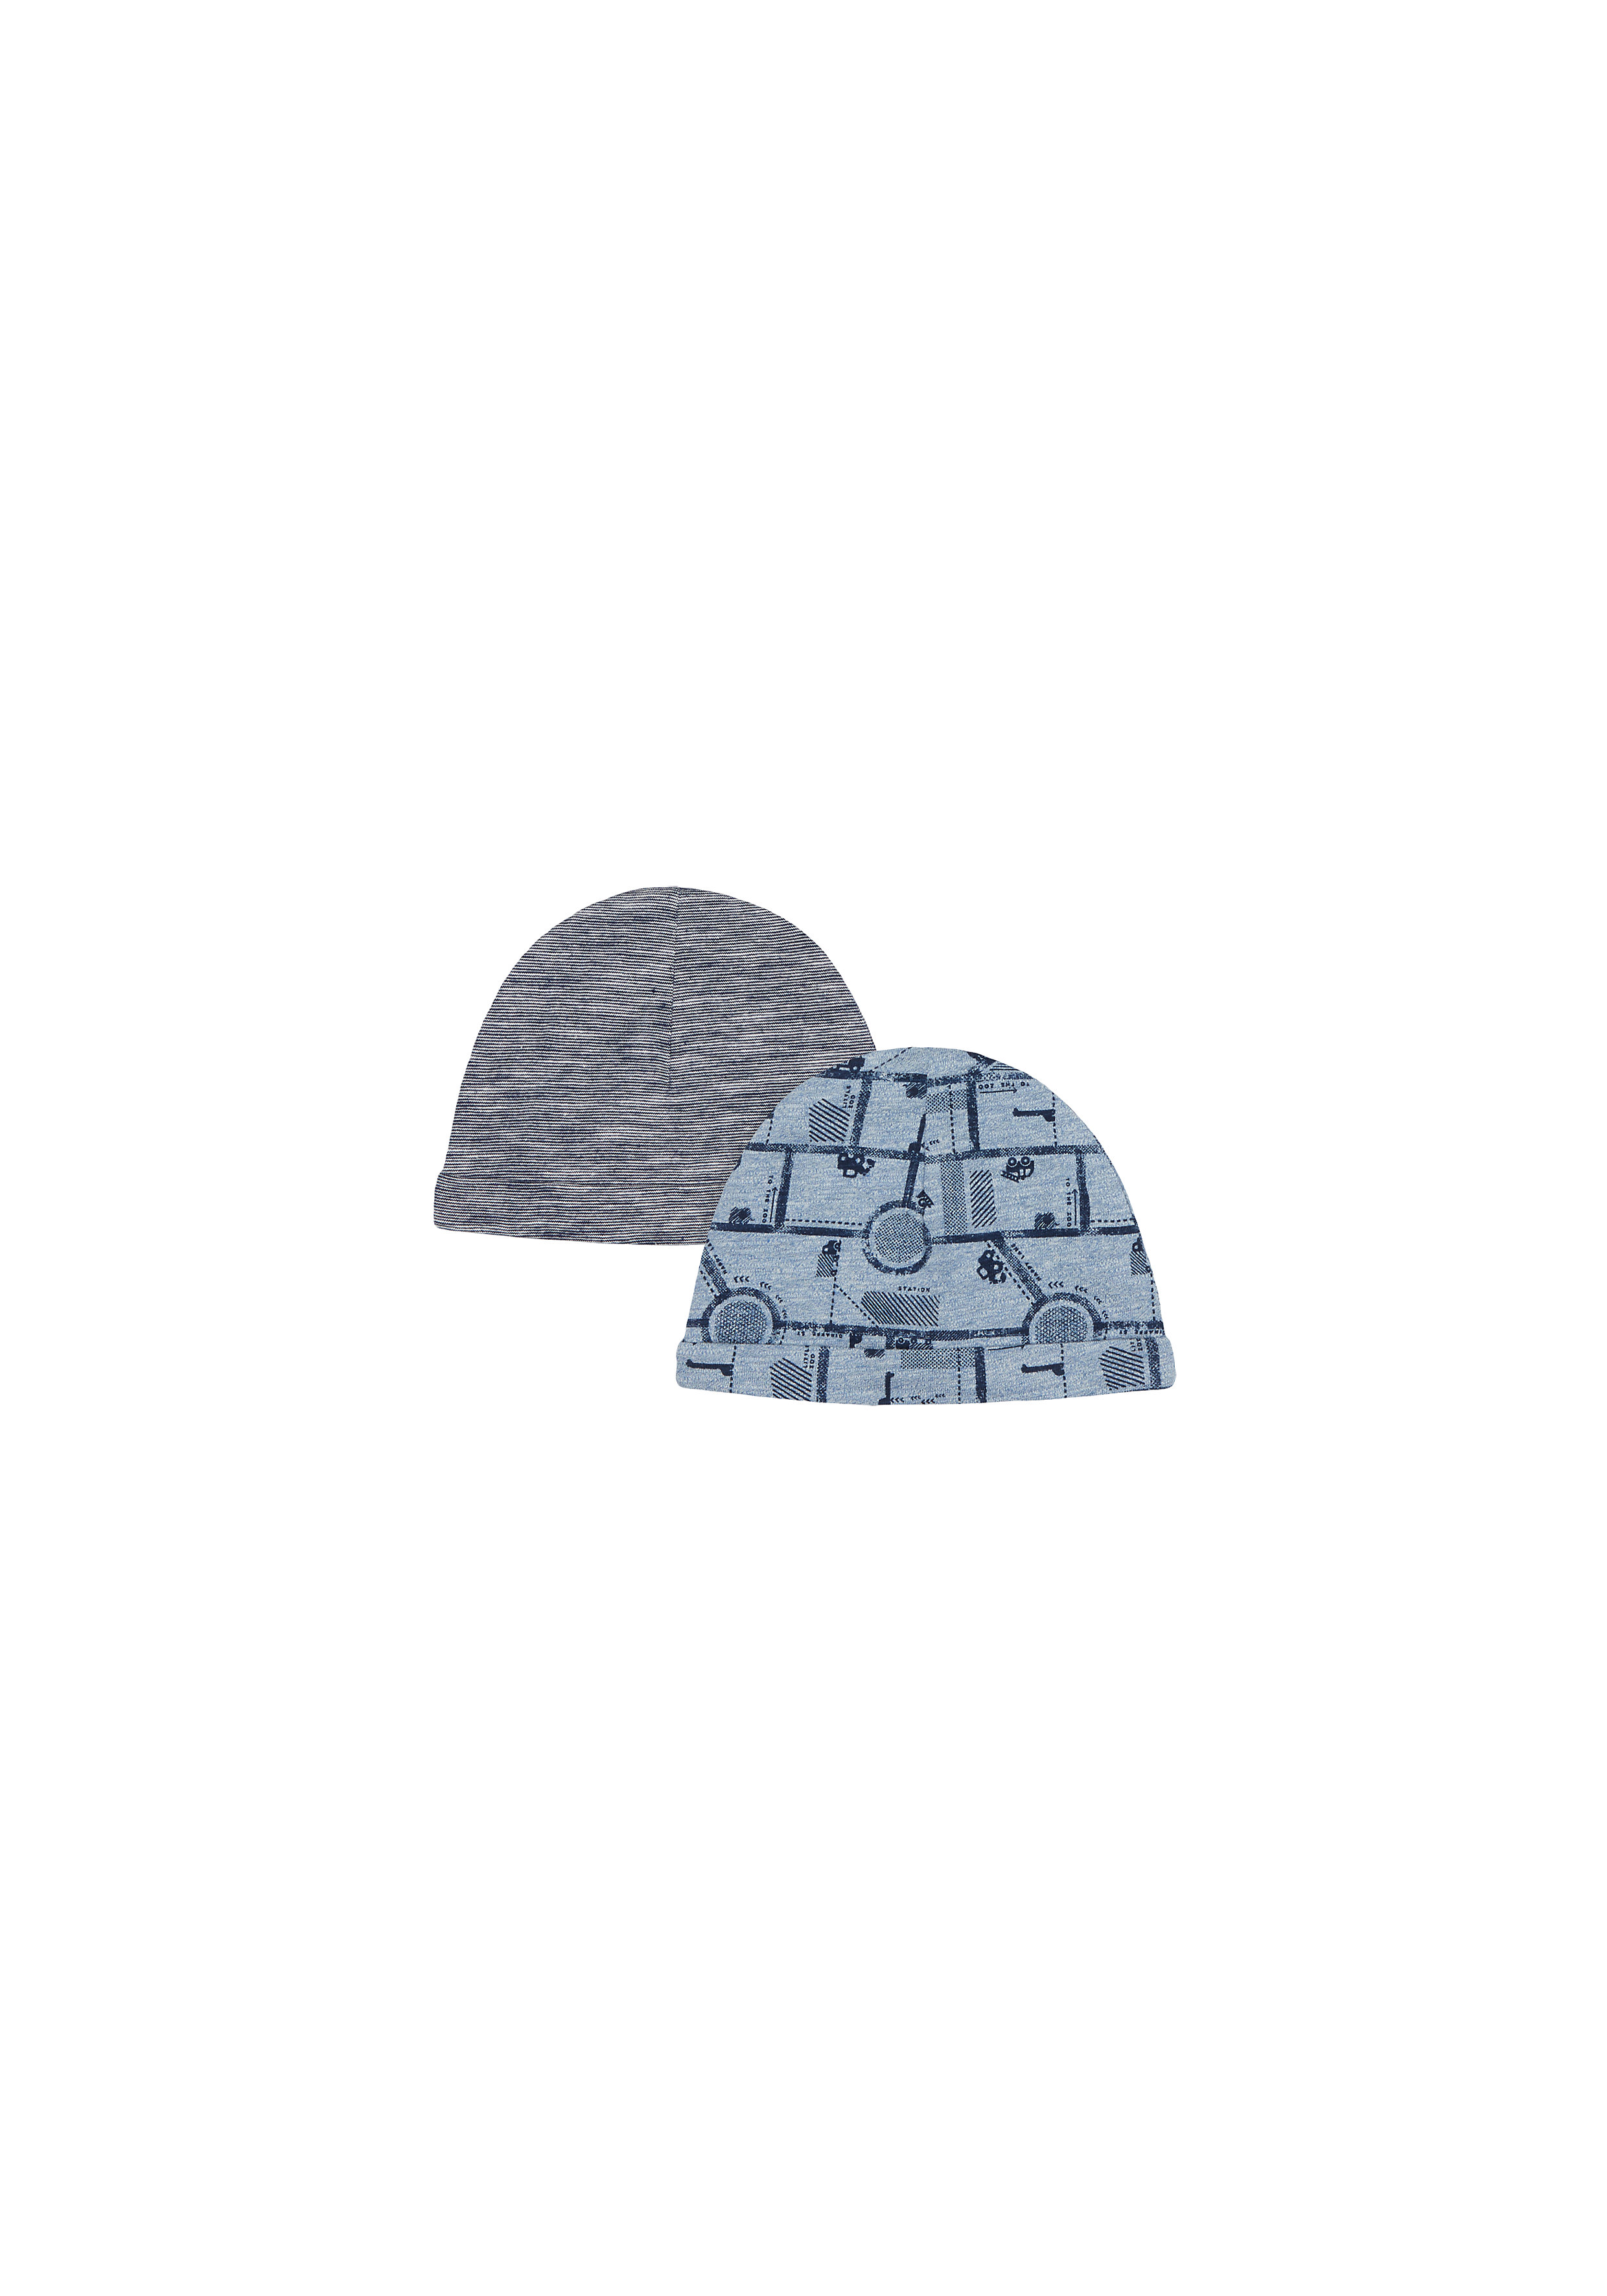 Mothercare | Boys Hats  - Pack Of 2 - Navy